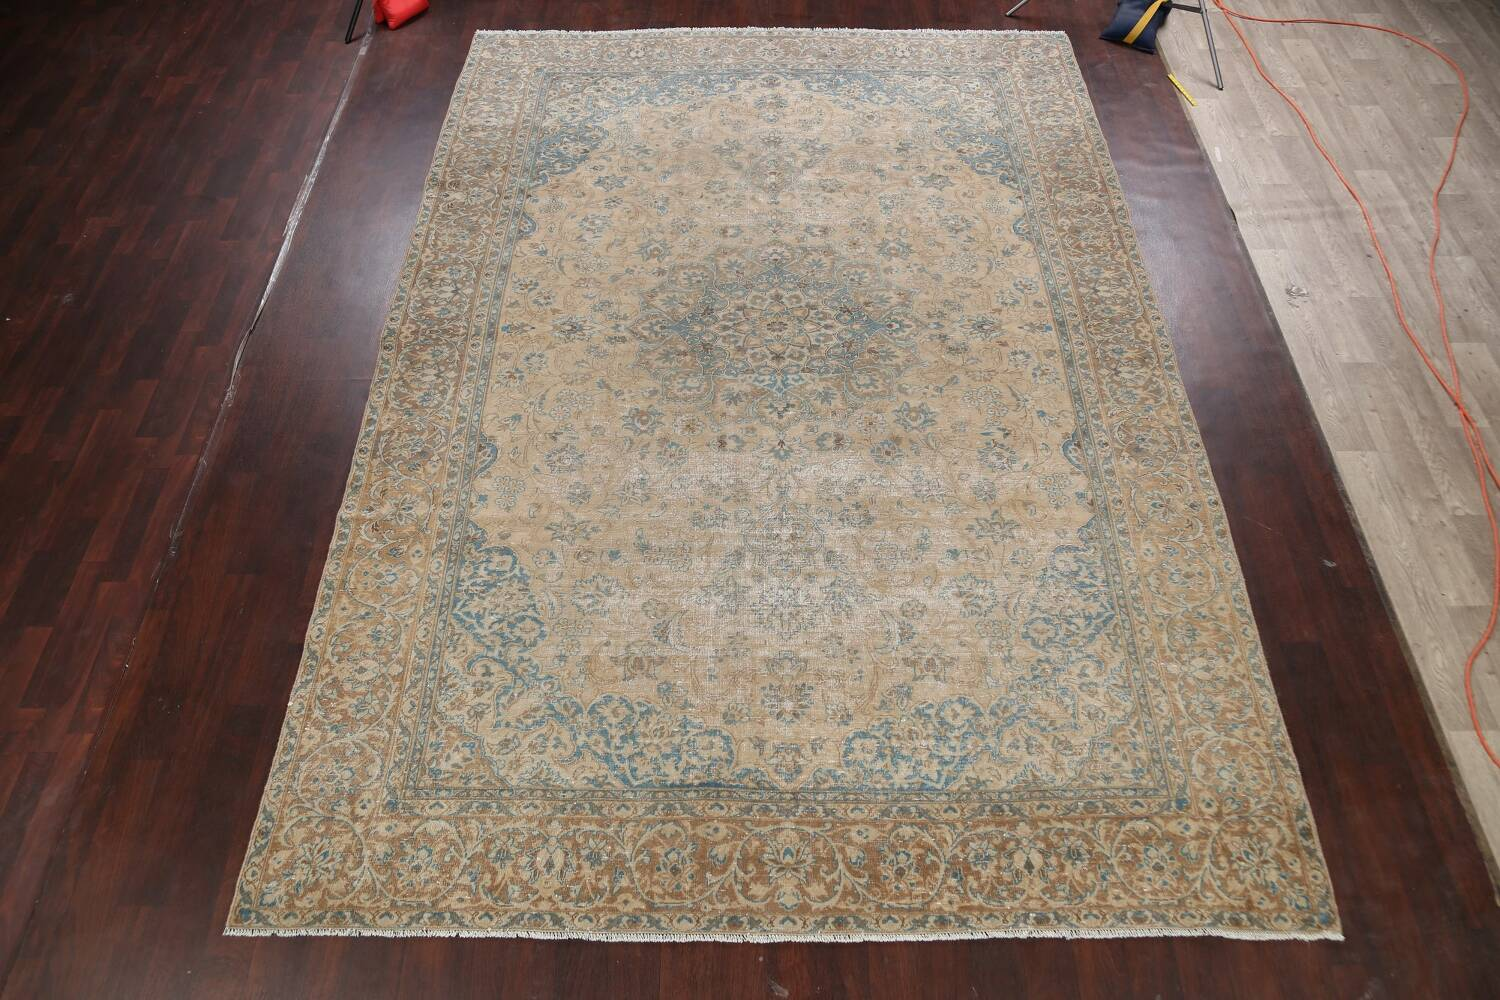 Antique Muted Floral Mashad Persian Area Rug 9x13 image 2